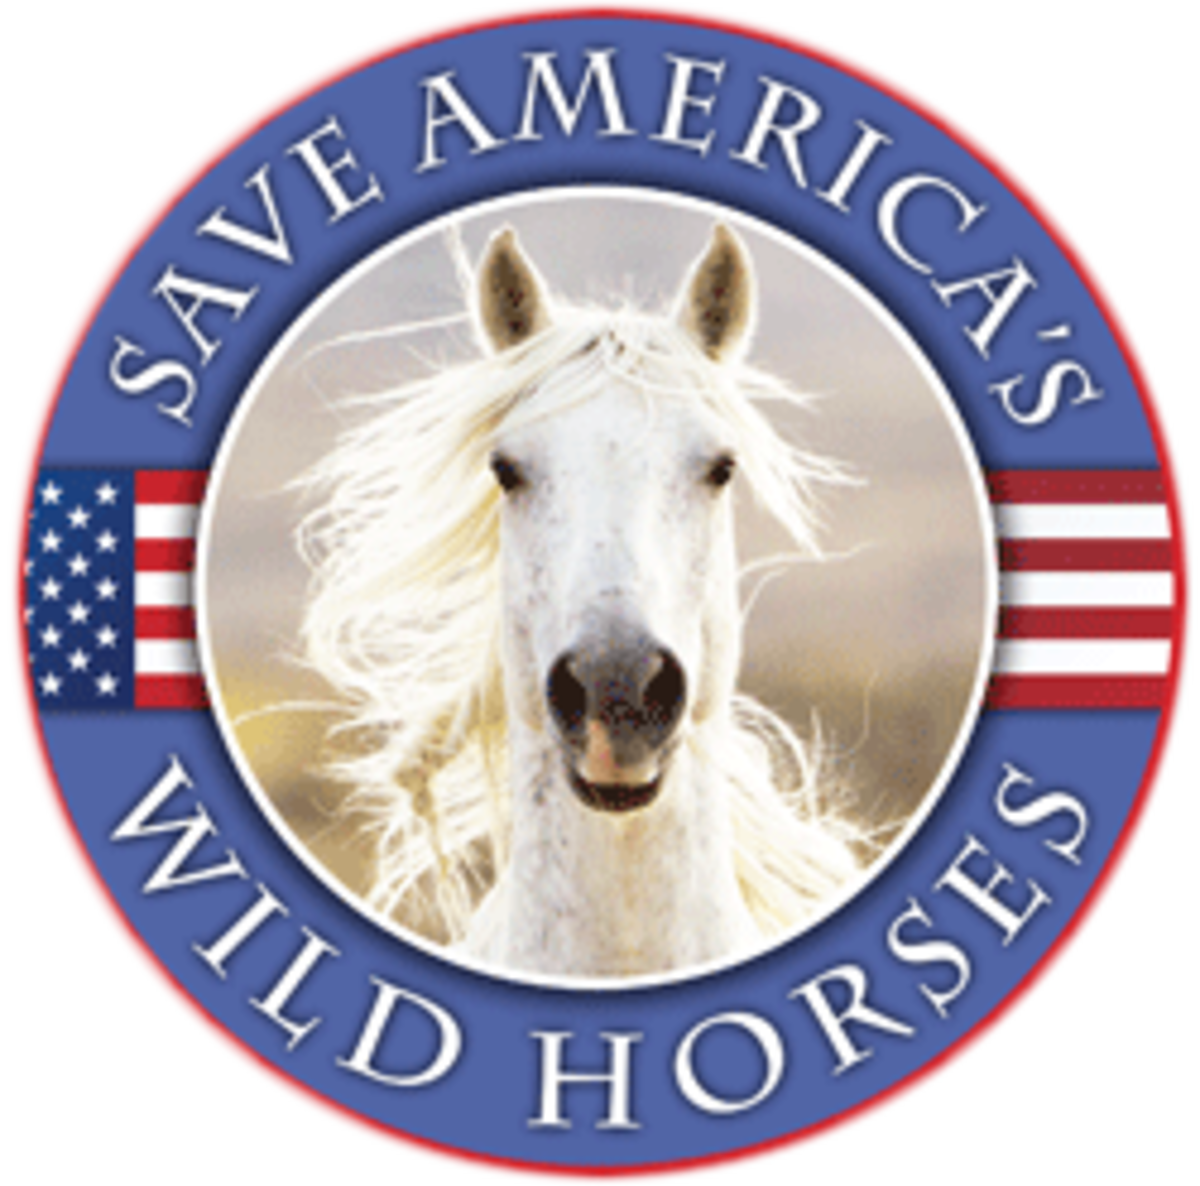 Wild Horse Freedom Federation has this on their website.